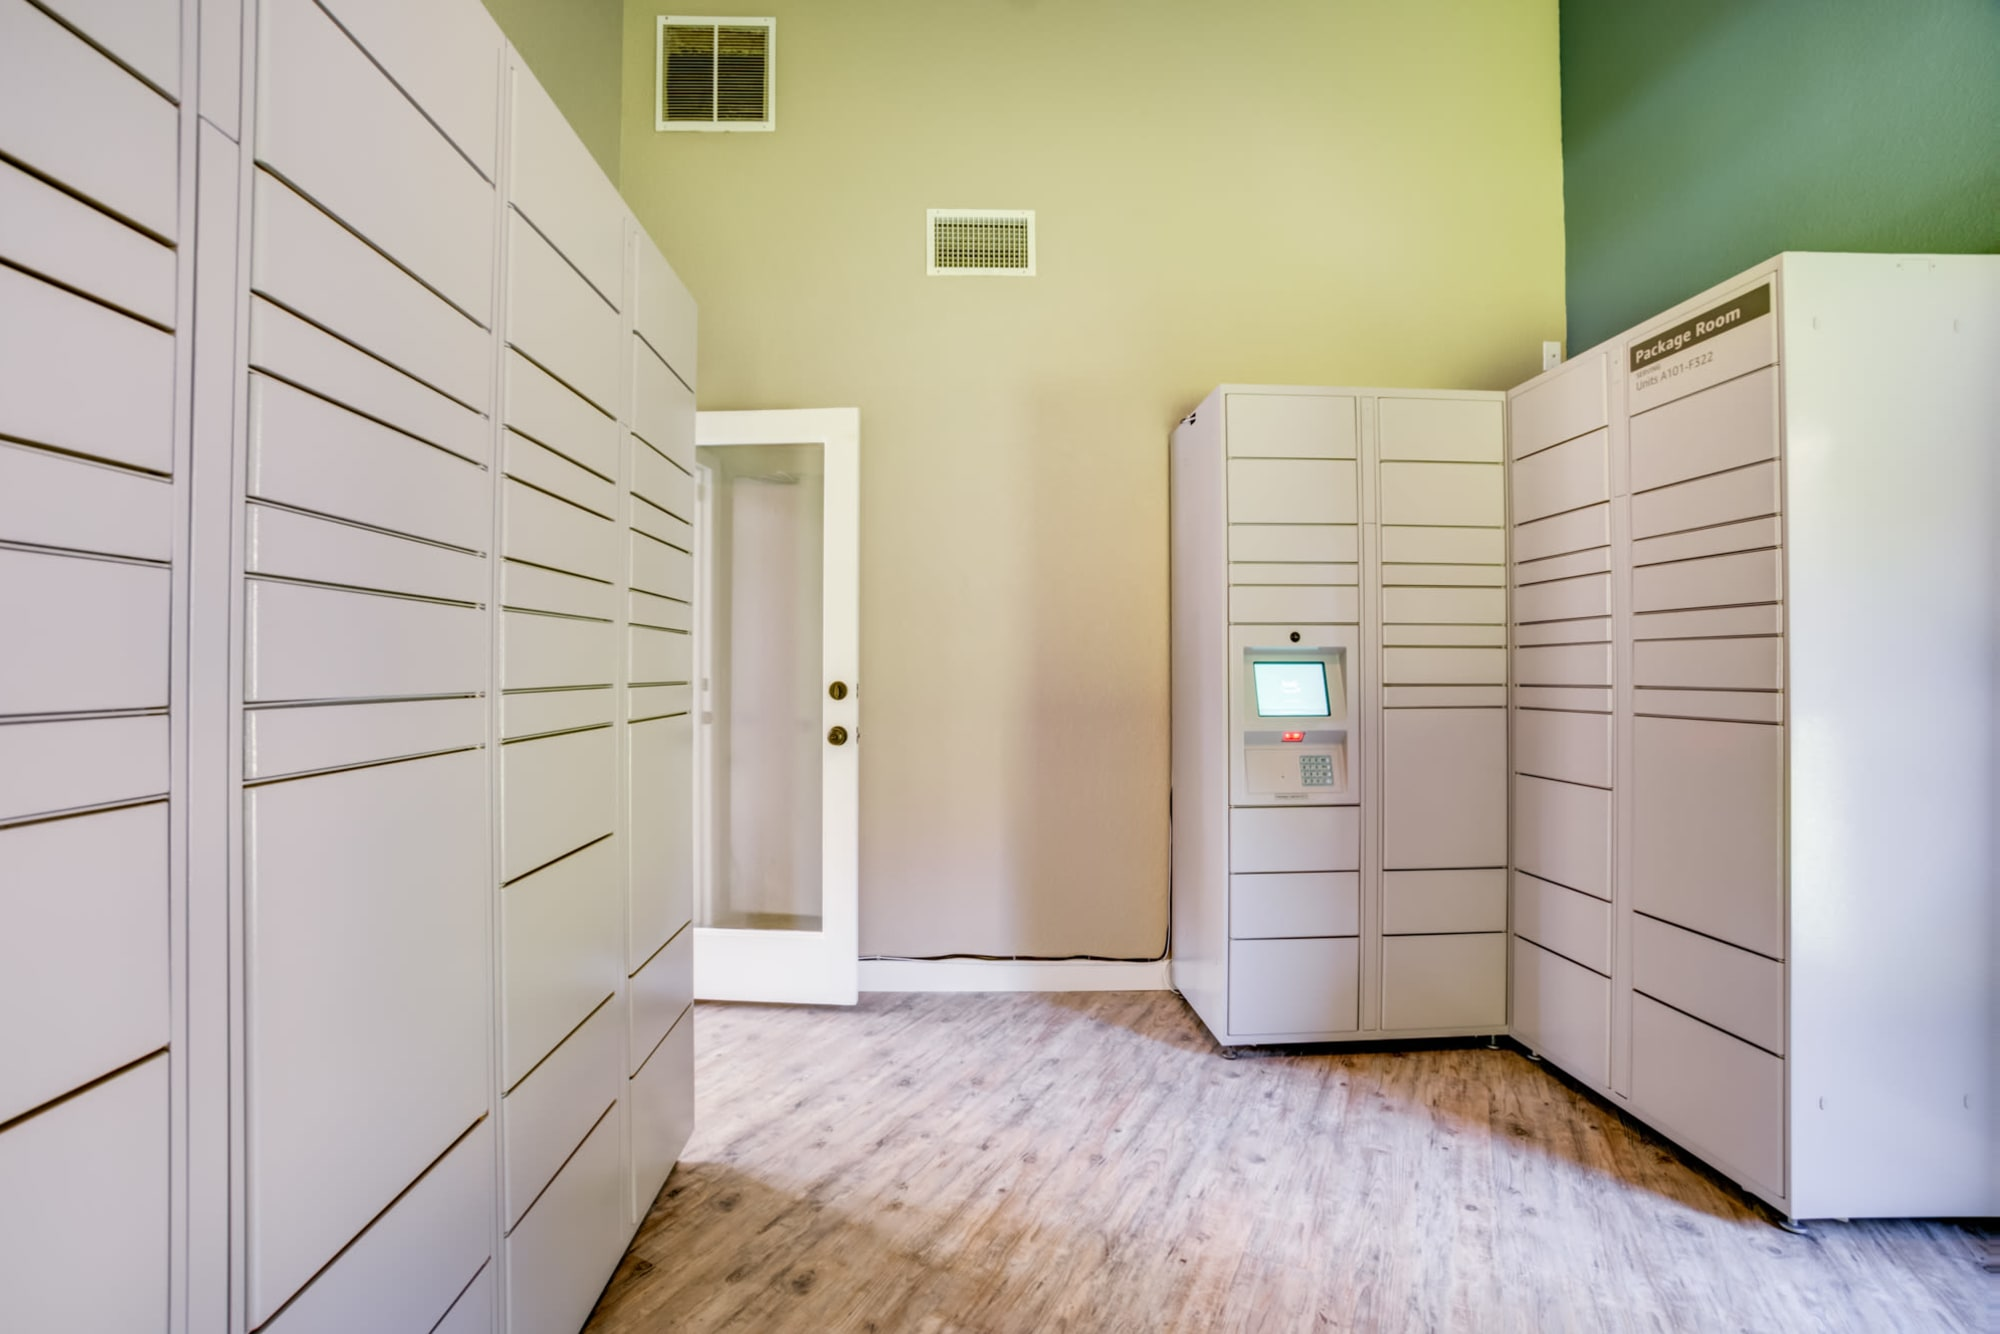 Package Room with 24-hour package lockers at Serramonte Ridge Apartment Homes